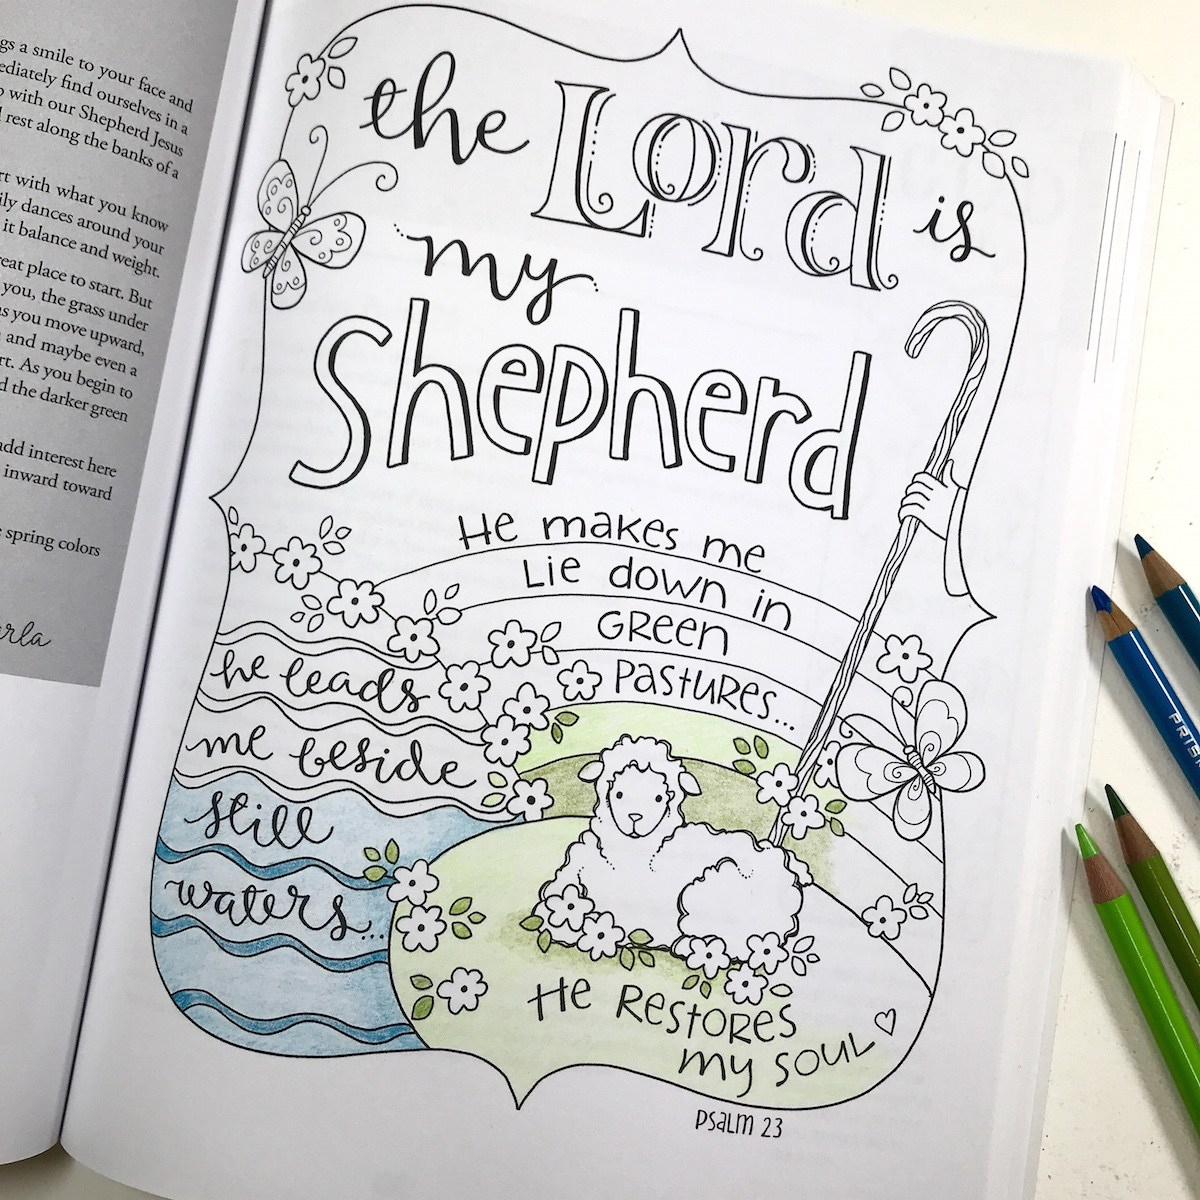 Free clipart 23rd psalm verse 3 coloring pages image library stock Psalm 23 The Lord is My Shepherd image library stock